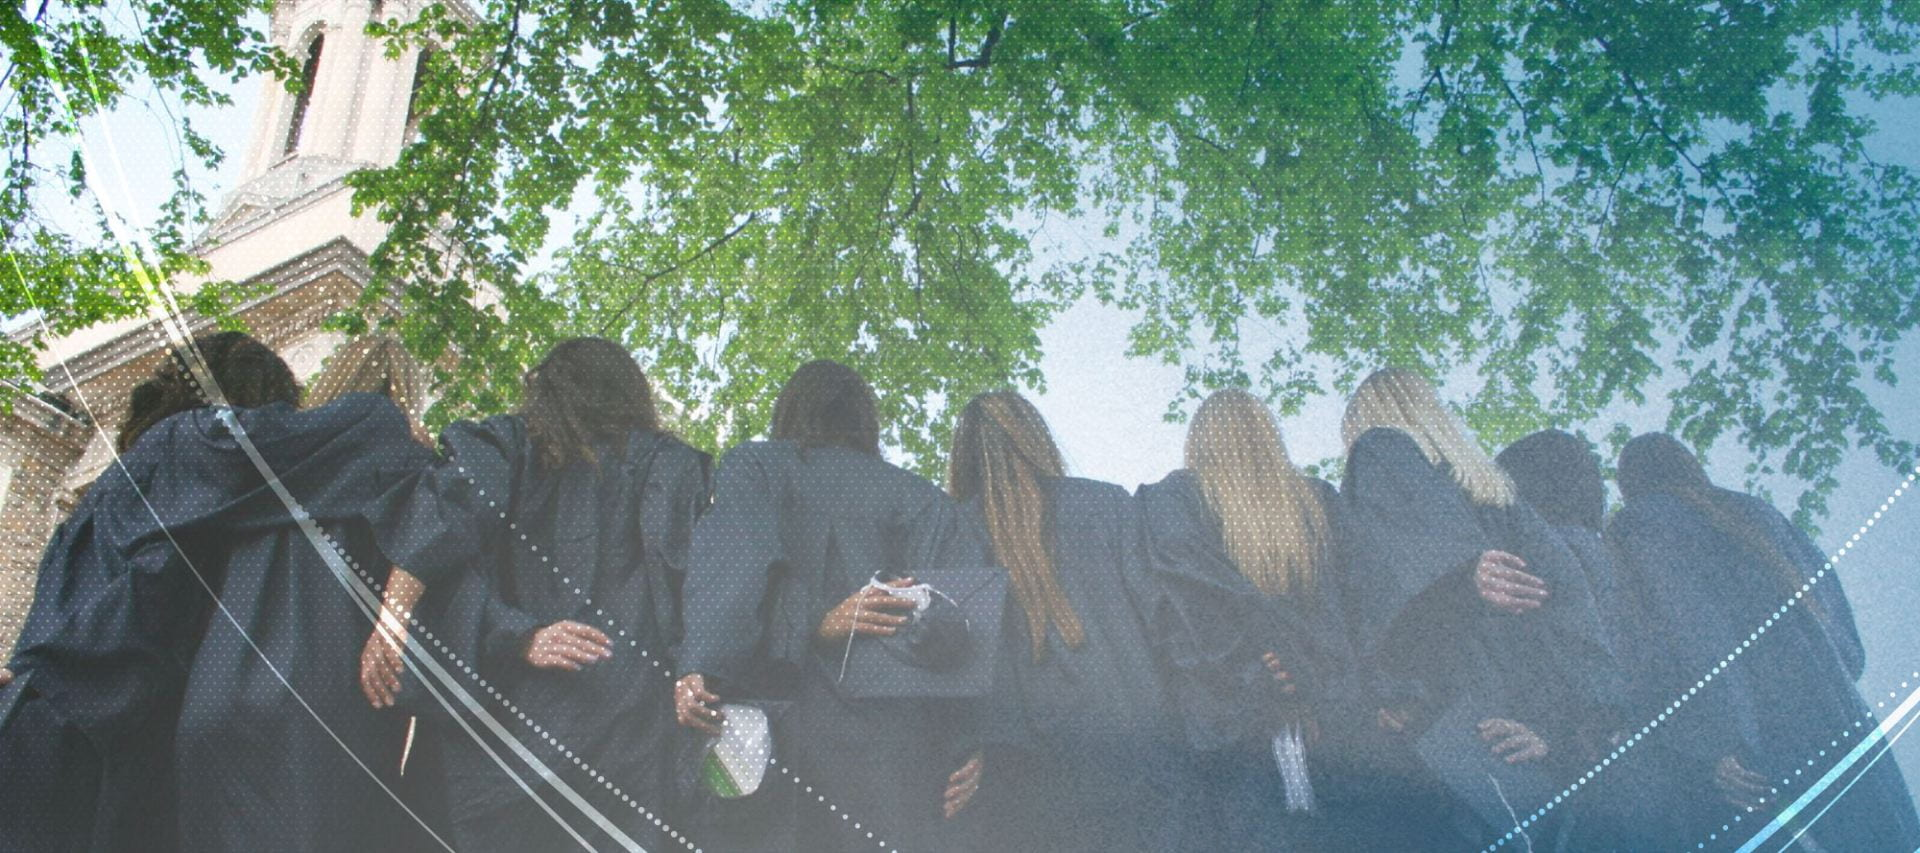 Penn State women graduates in graduation gowns in front of Old Main.